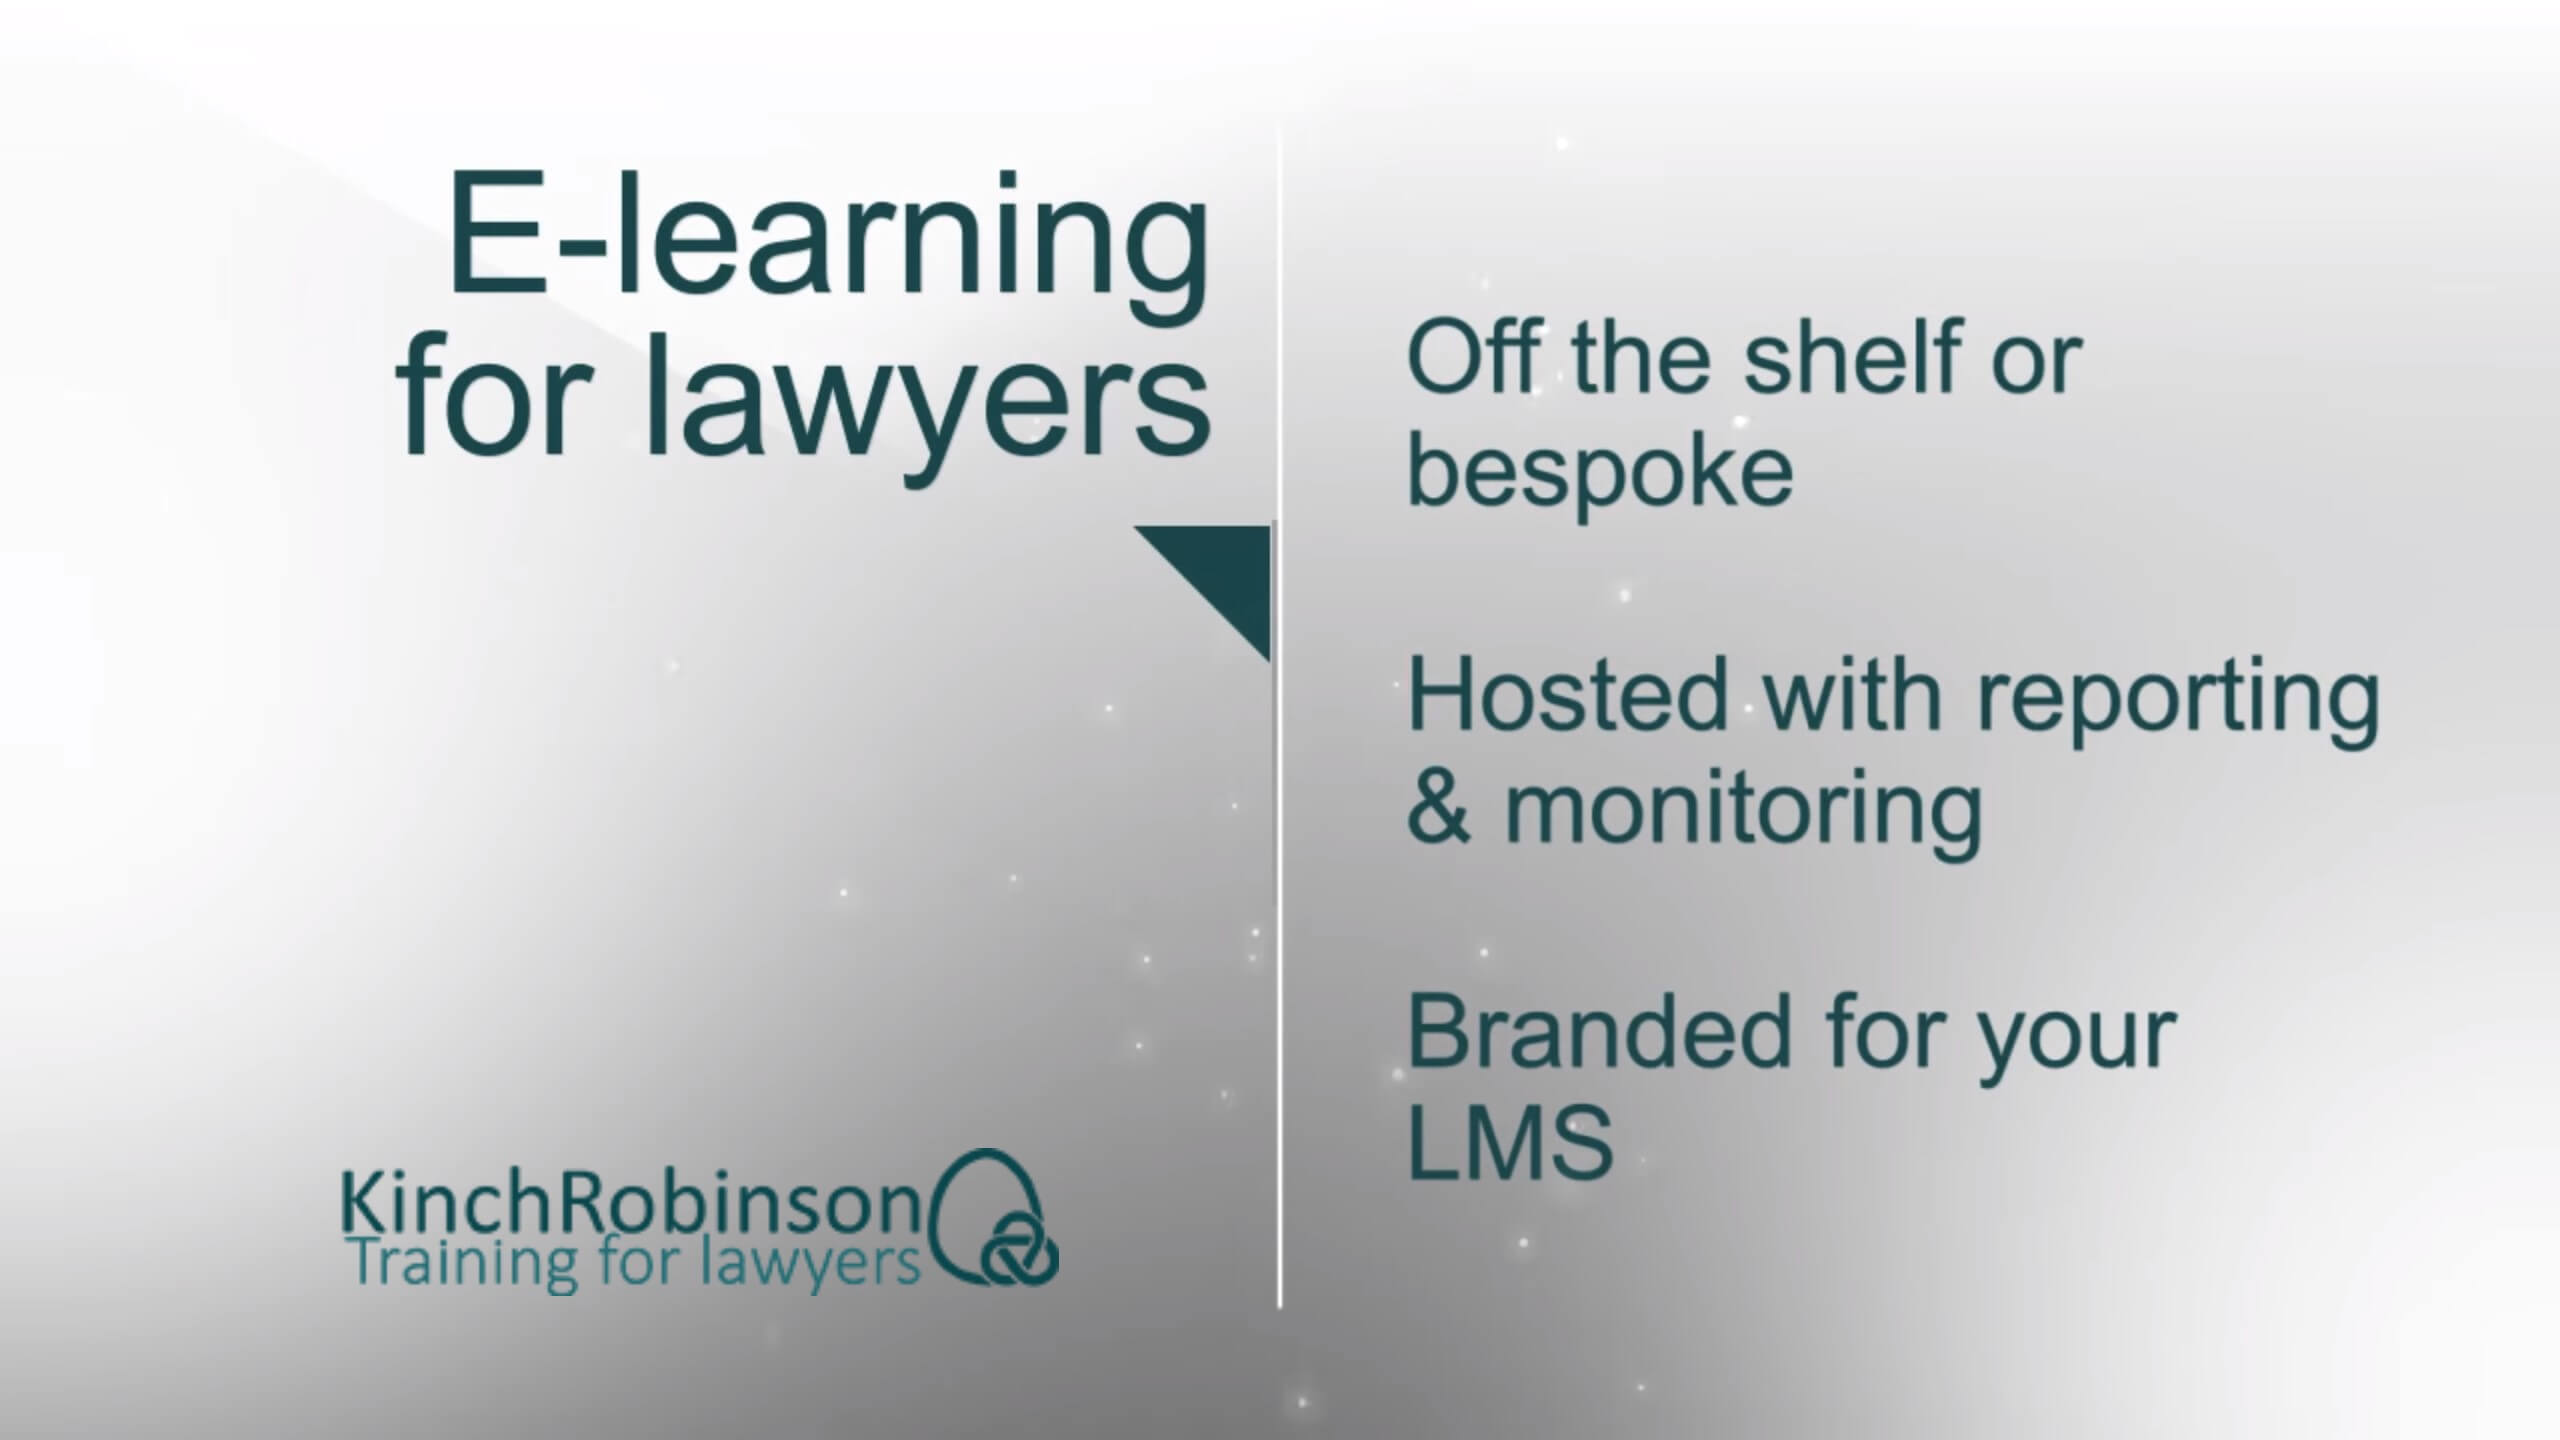 e-learning for lawyers